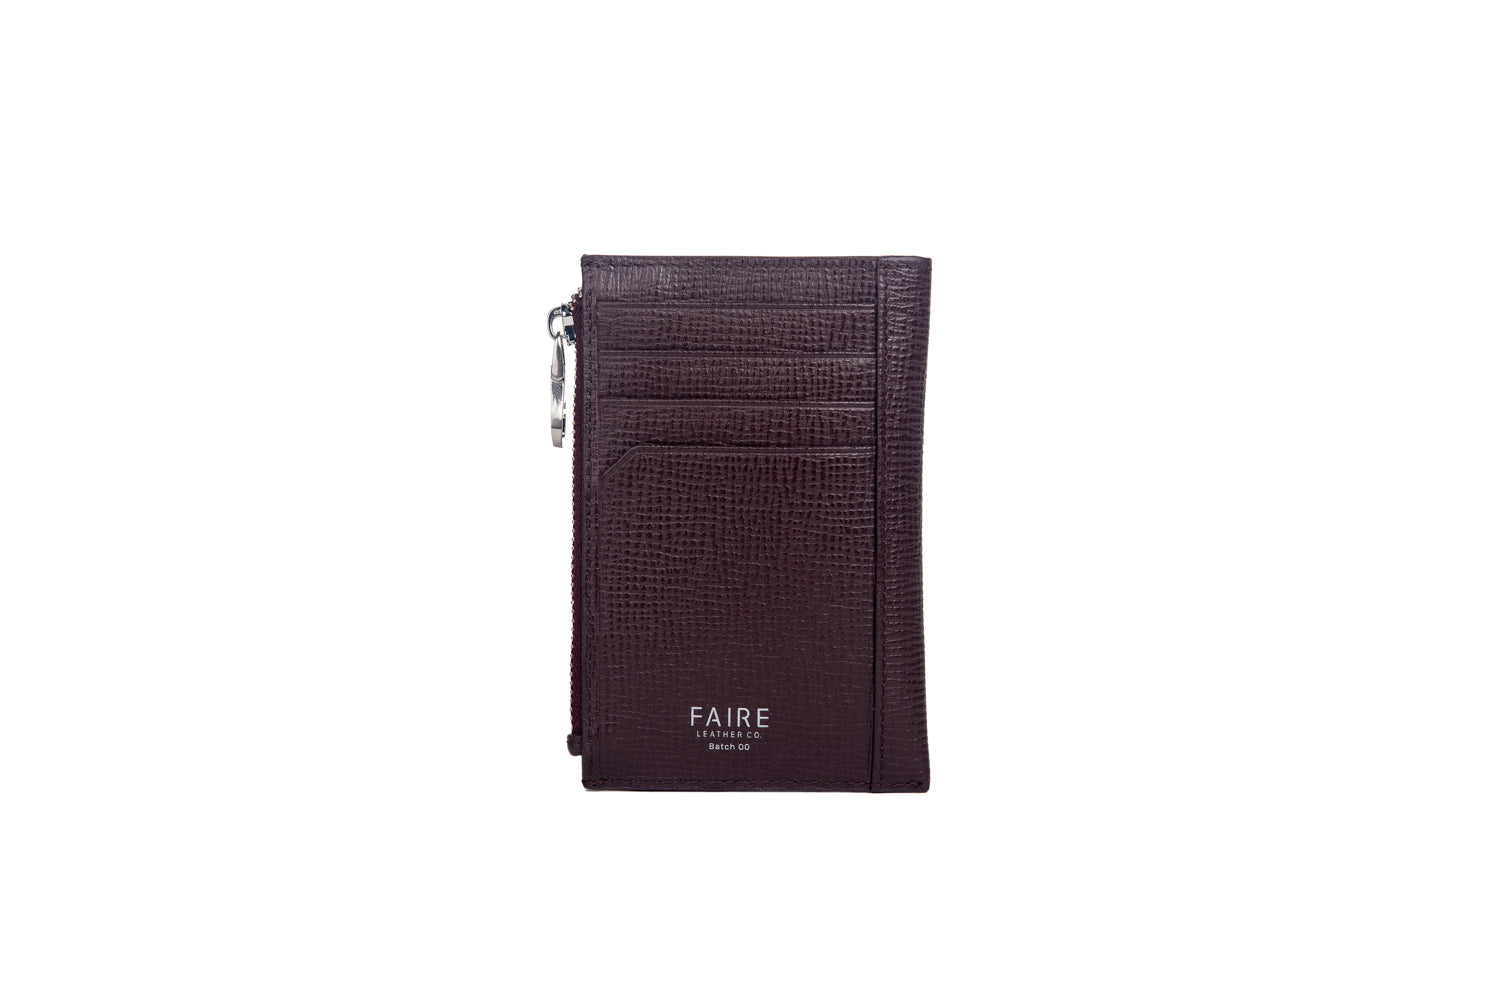 Bond CG Slim Briefcase, Tablet Sleeve & Specter CG Card Wallet with Coin Pouch